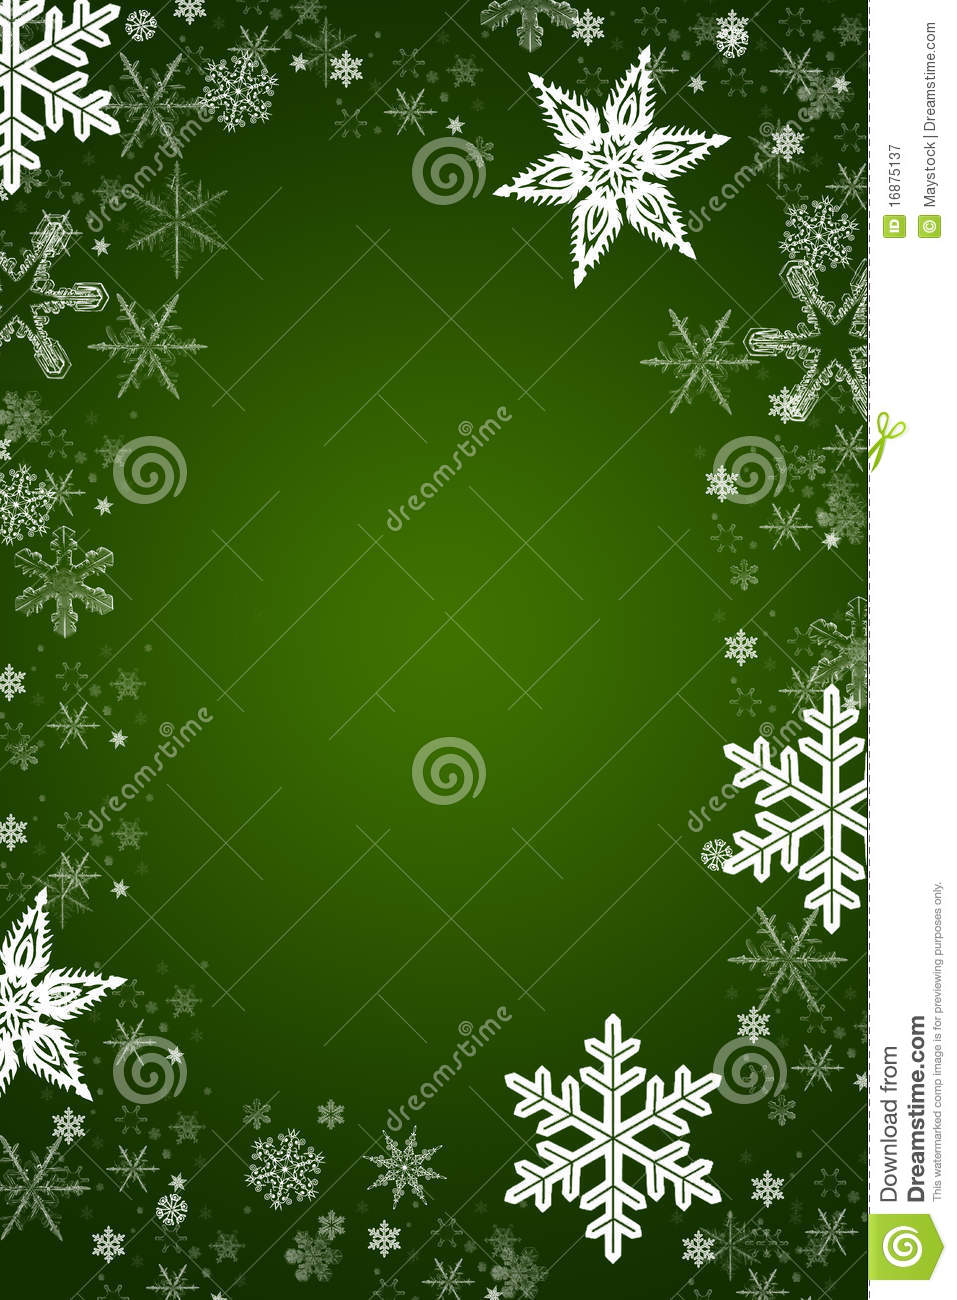 Christmas Vector Snowflakes In A Green Background Royalty ...